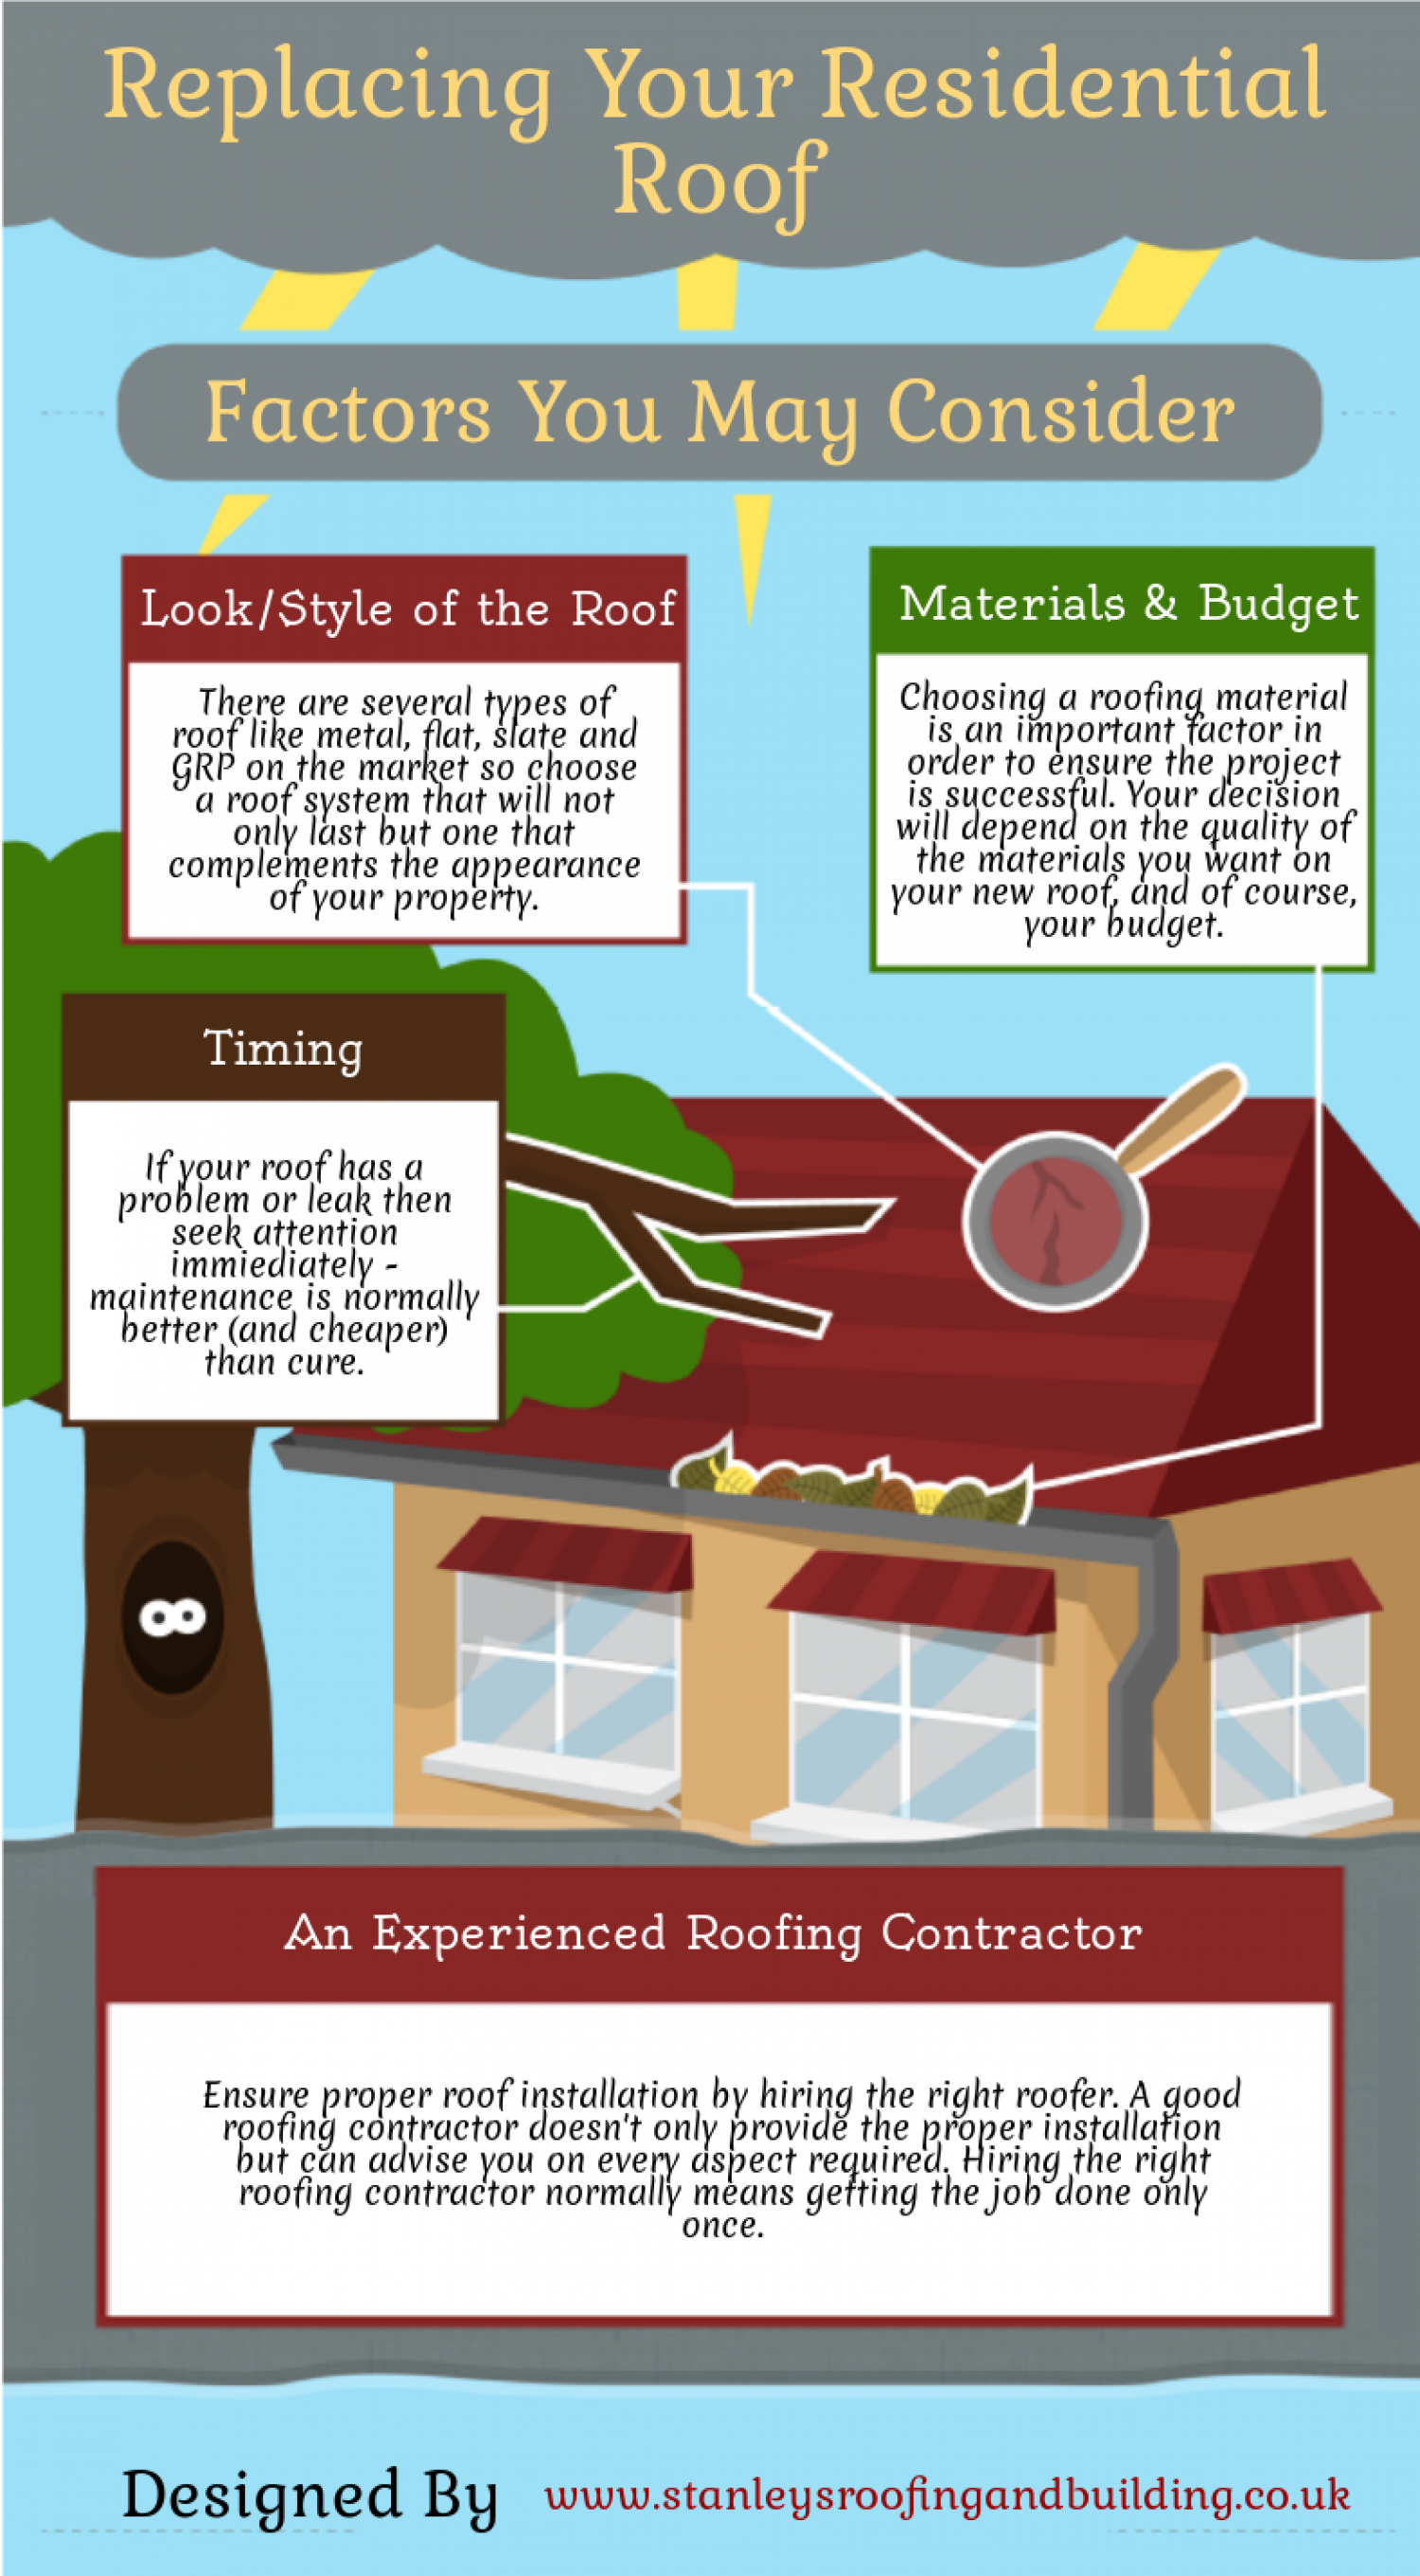 Factors You May Consider When Replacing Your Residential Roof Infographic